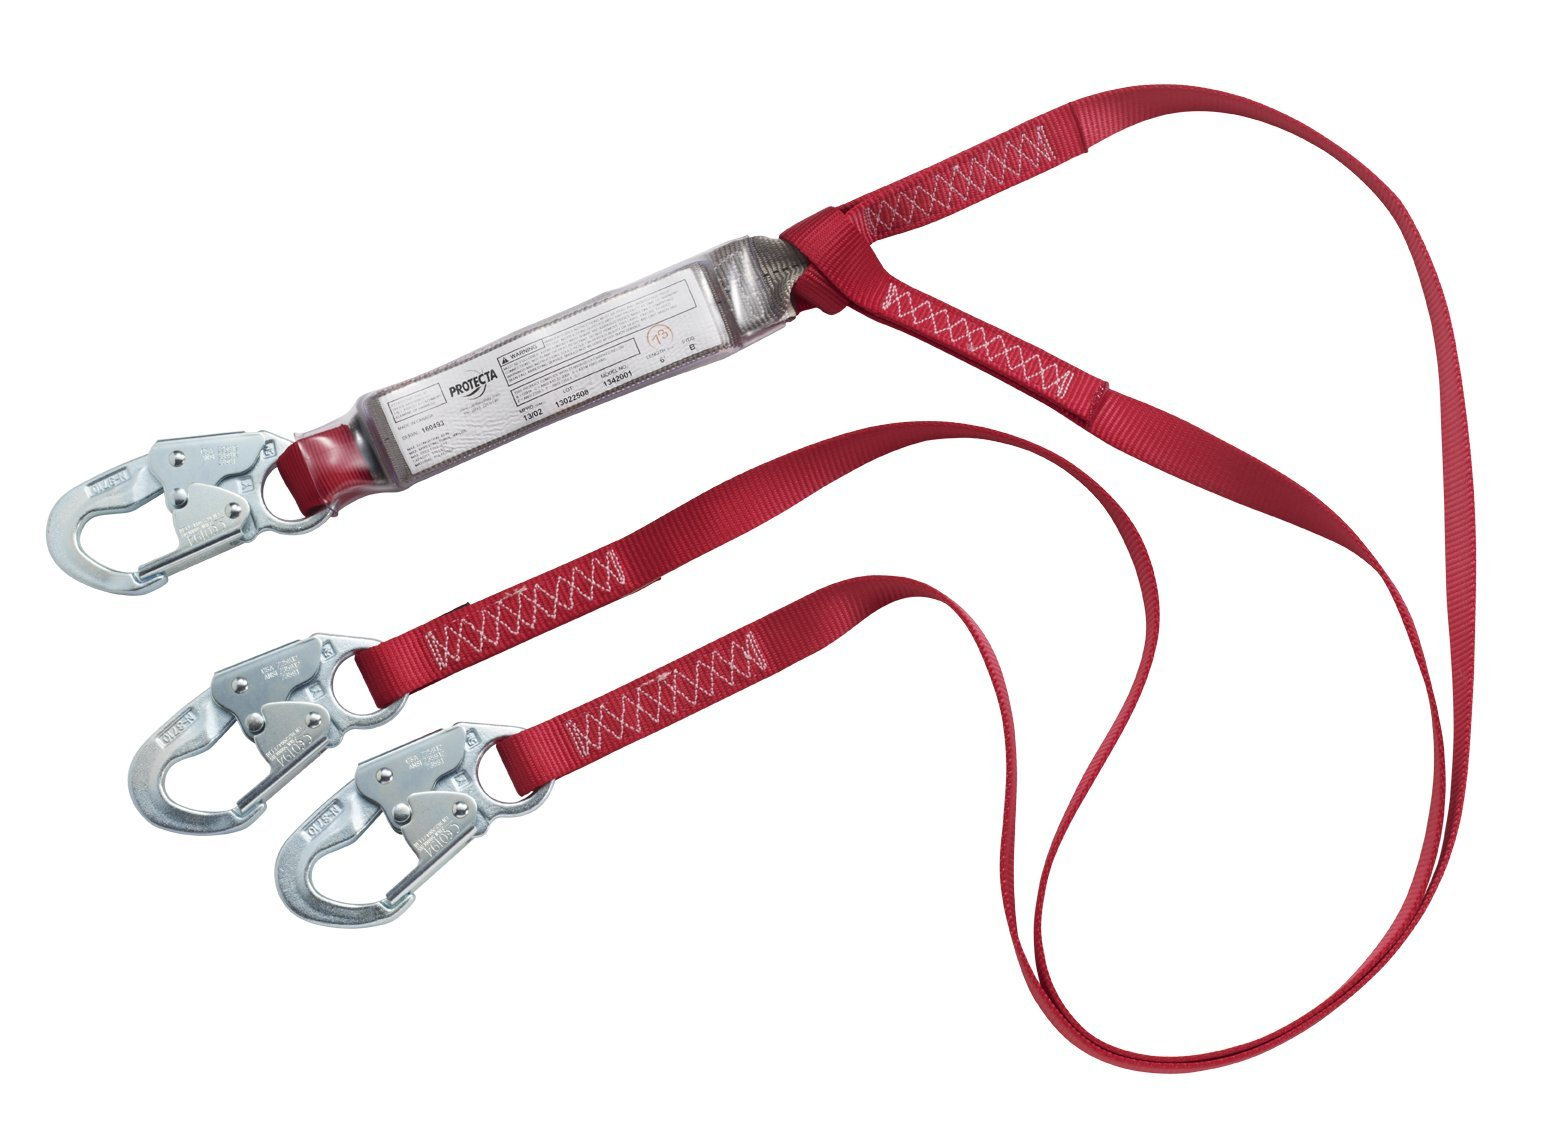 3M Protecta PRO Pack 1342001 6', 100-Percent Shock Absorbing Lanyard, Snap Hooks At Each End, Red/Gray